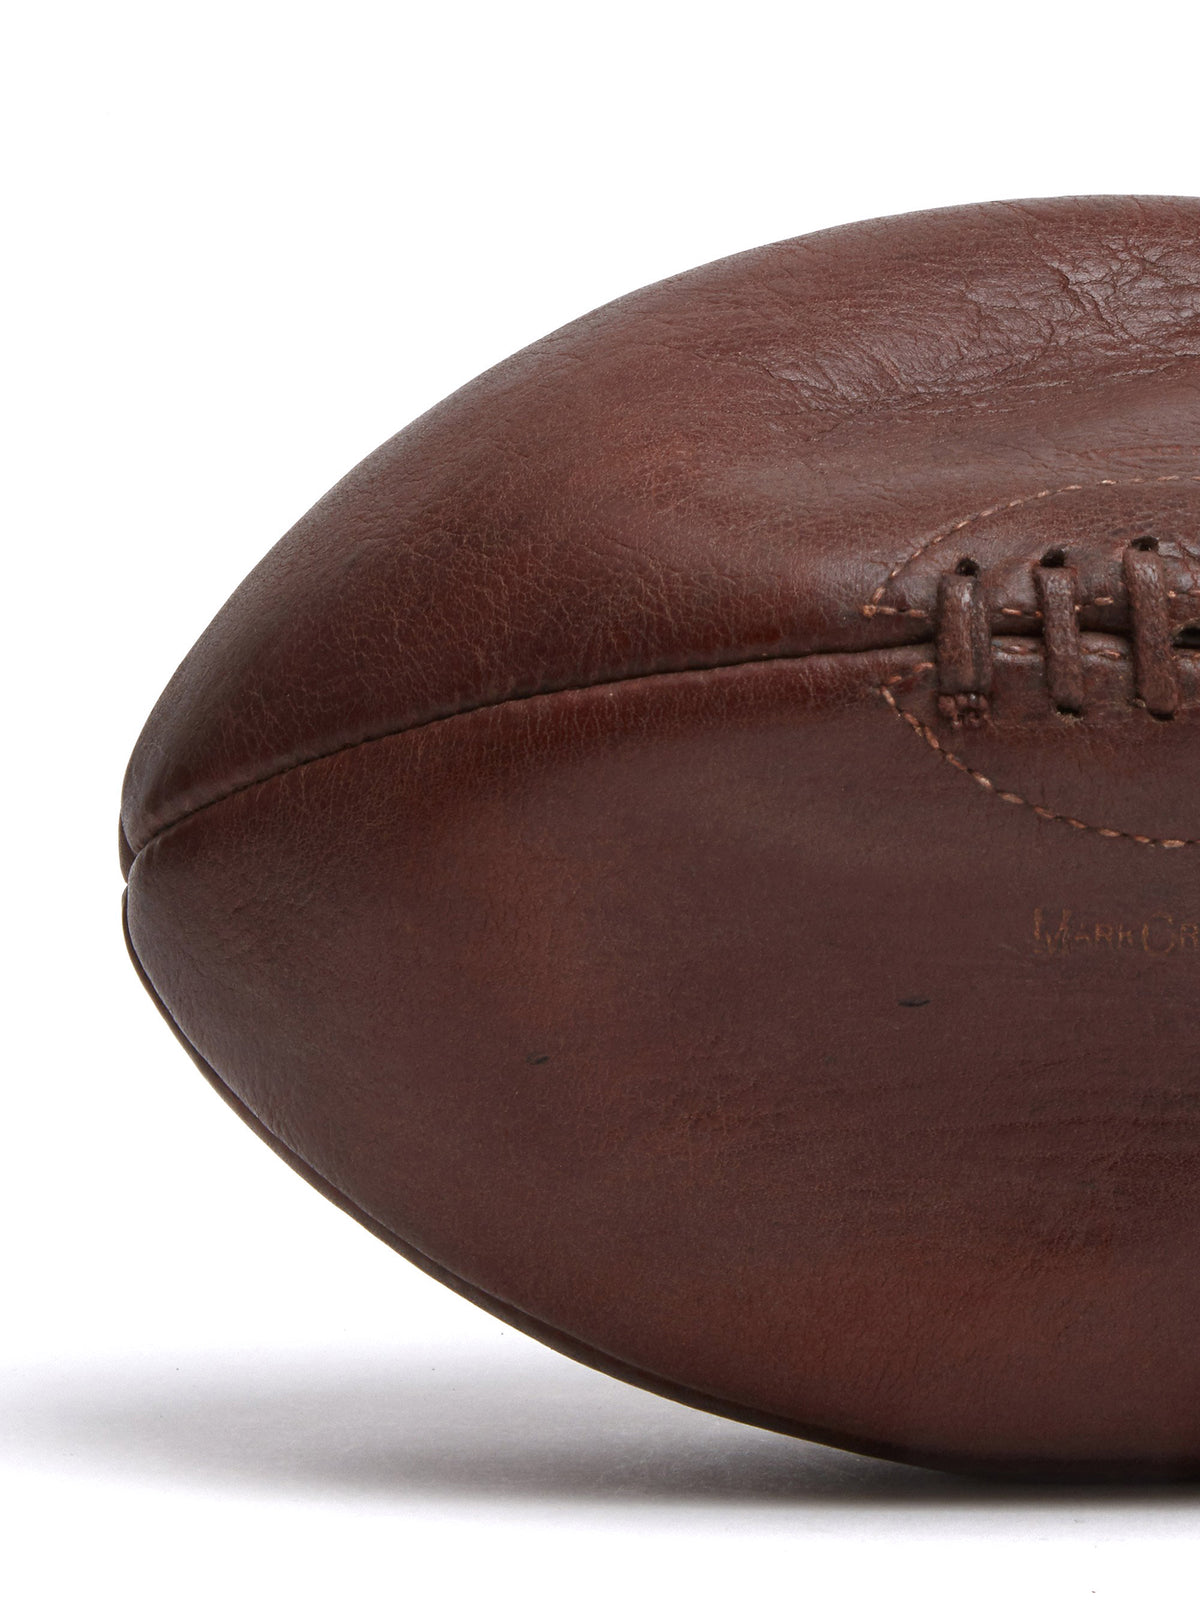 Mark Cross Vintage Leather Rugby Ball Chocolate Detail